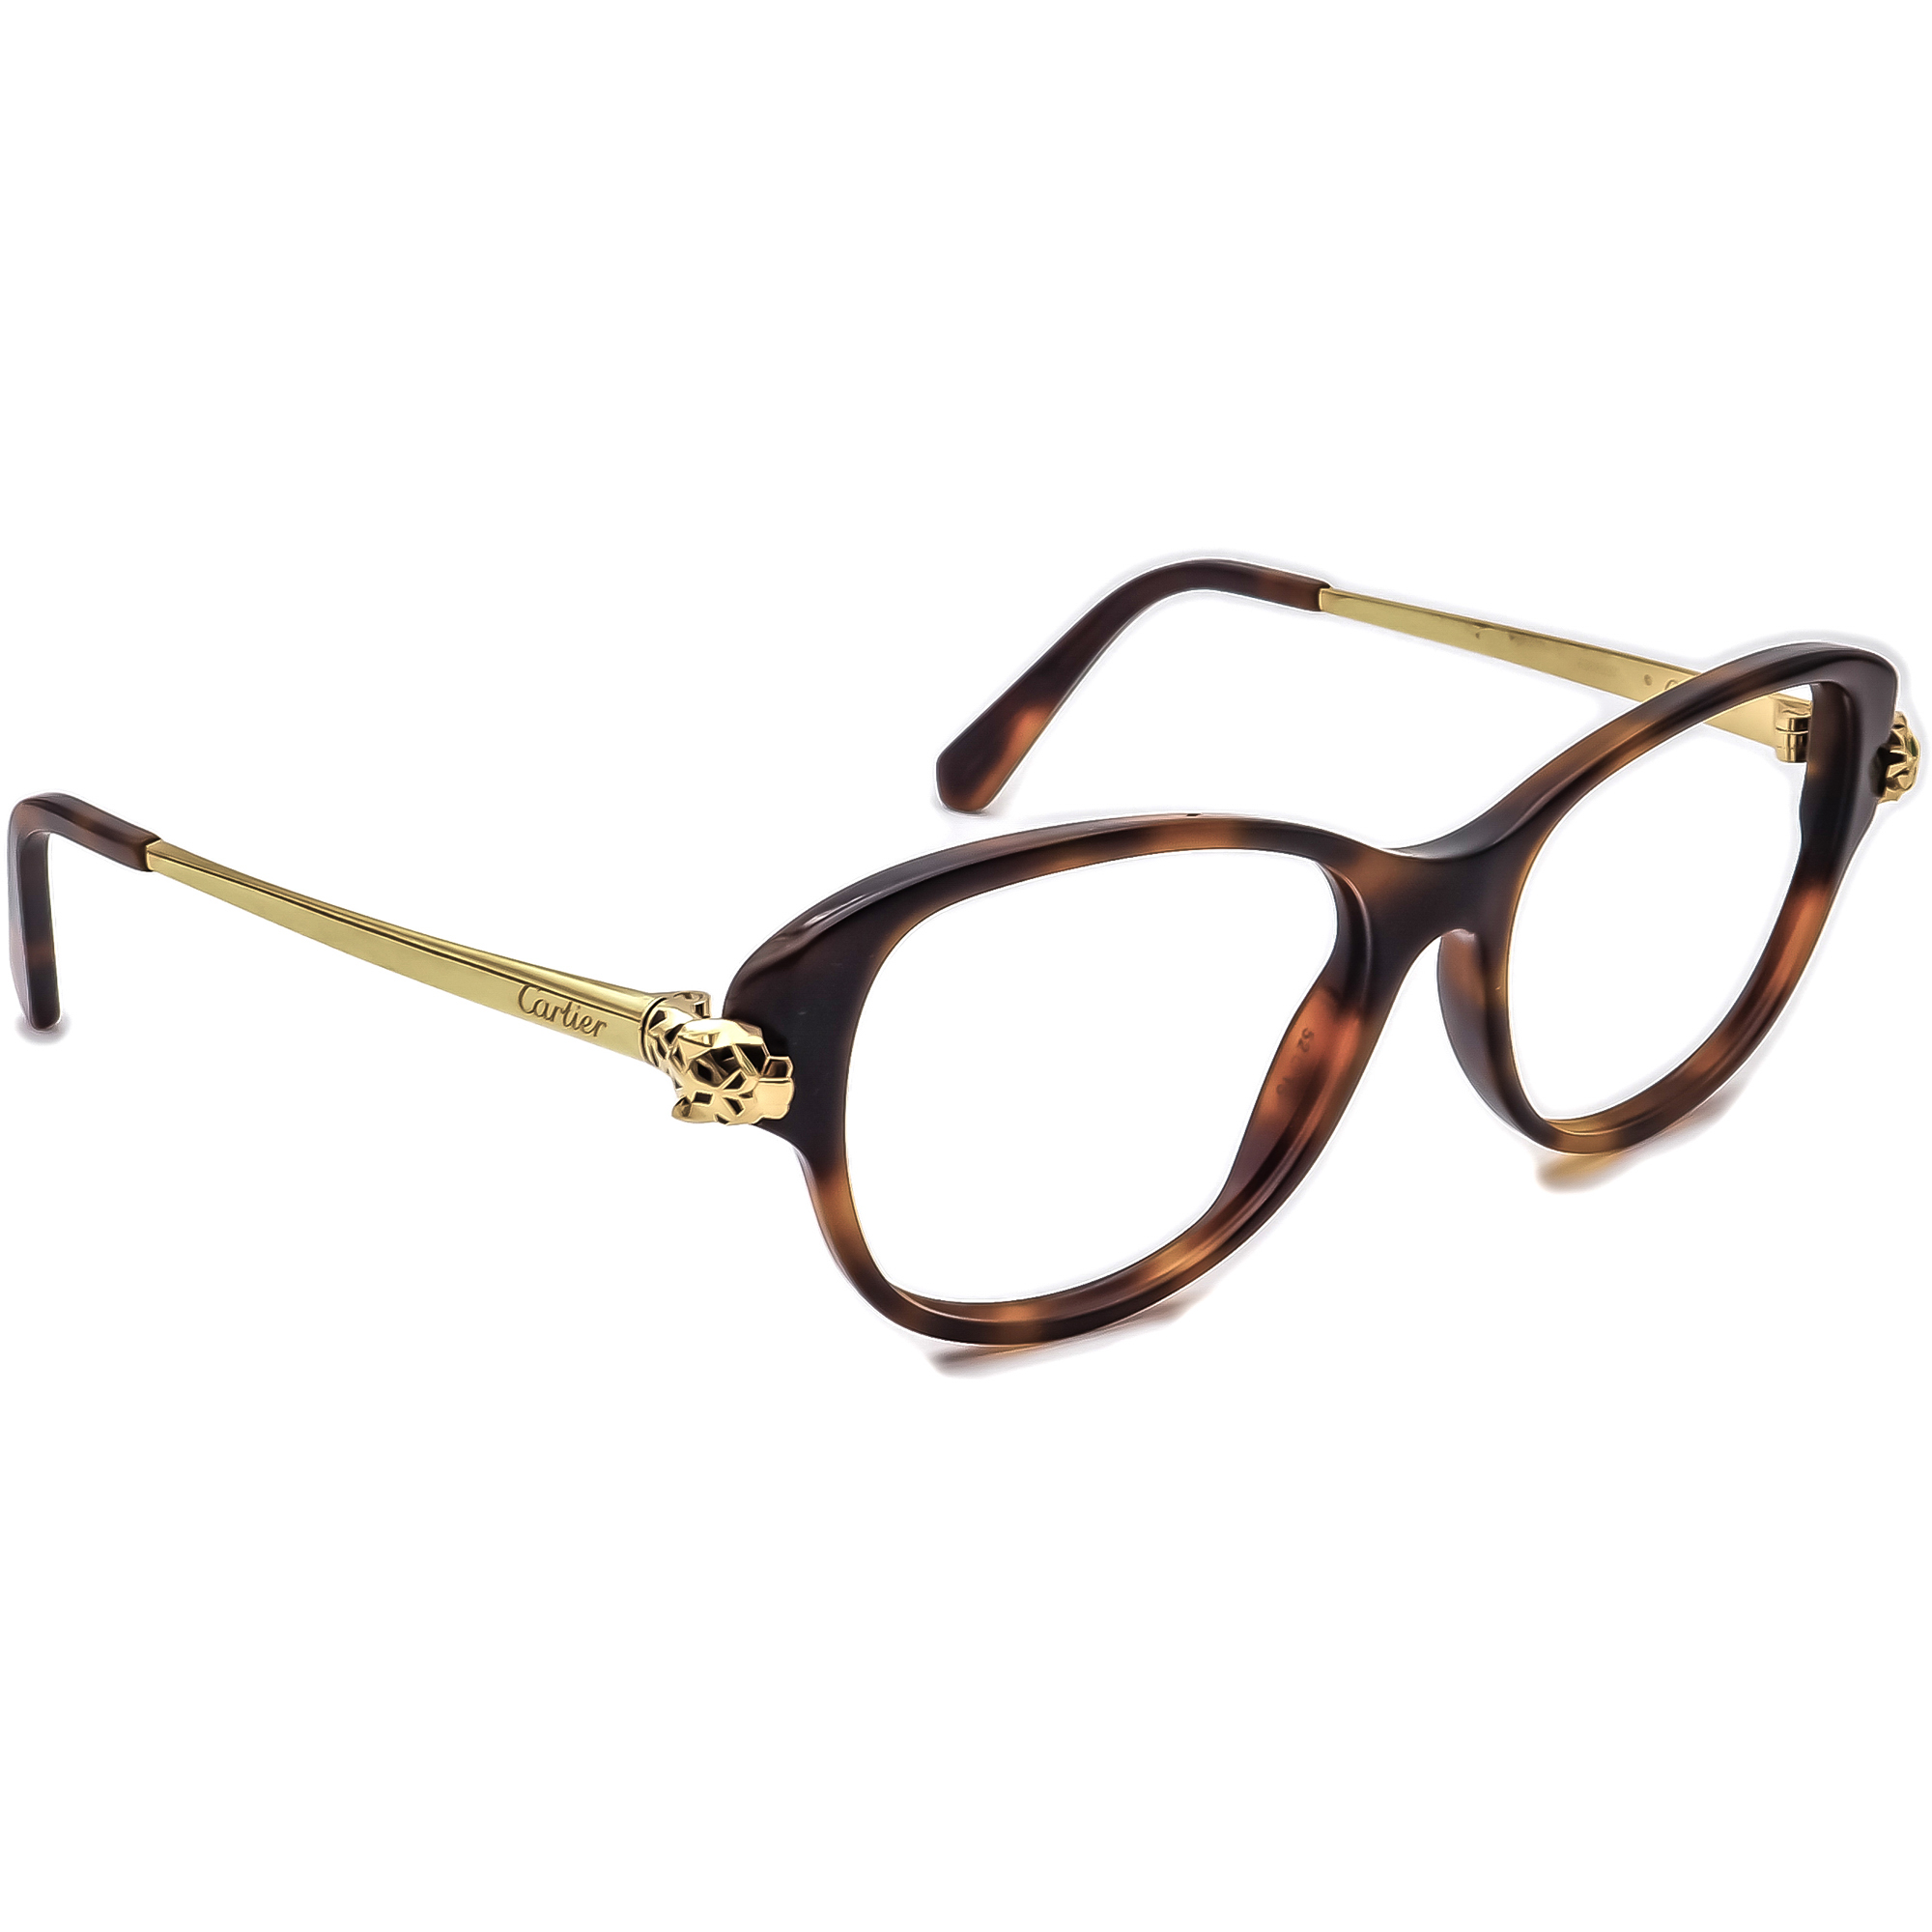 Cartier Panthere 6368937 Eyeglasses